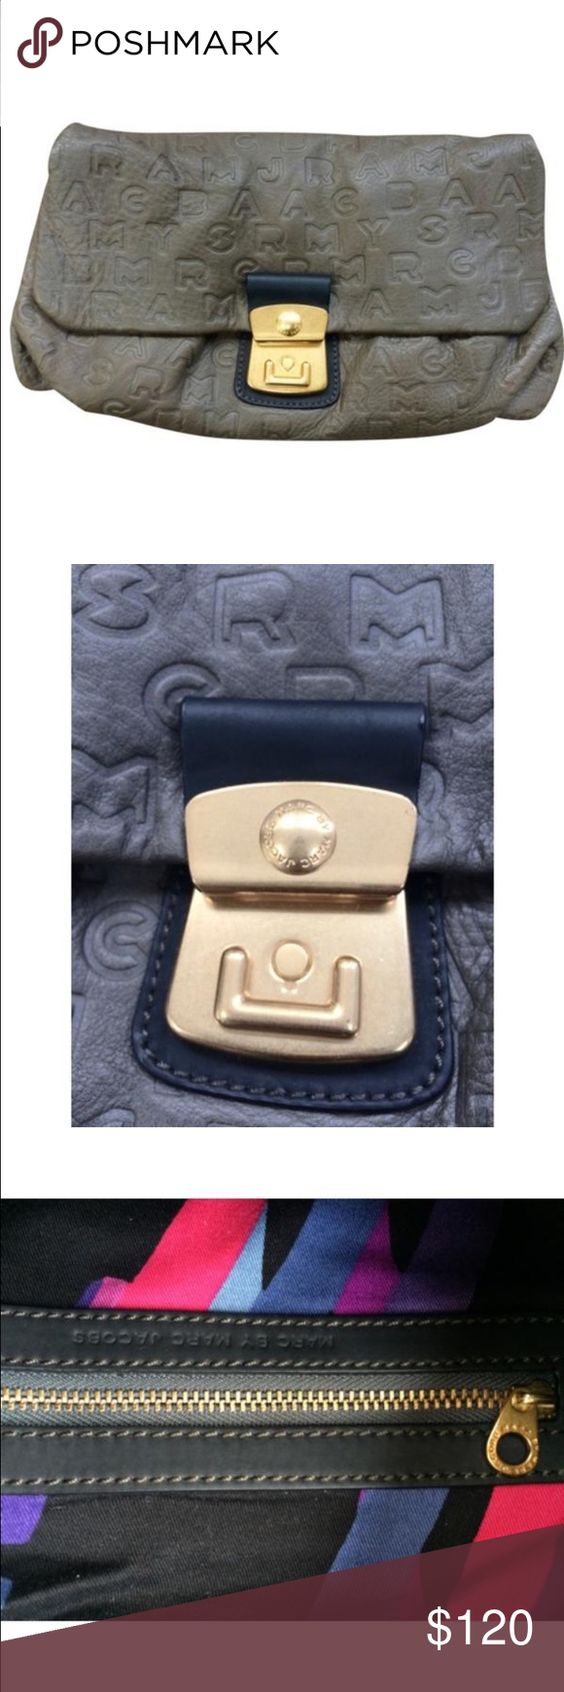 Marc jacobs grey leather clutch Excellent condition Marc Jacobs Bags Clutches & Wristlets